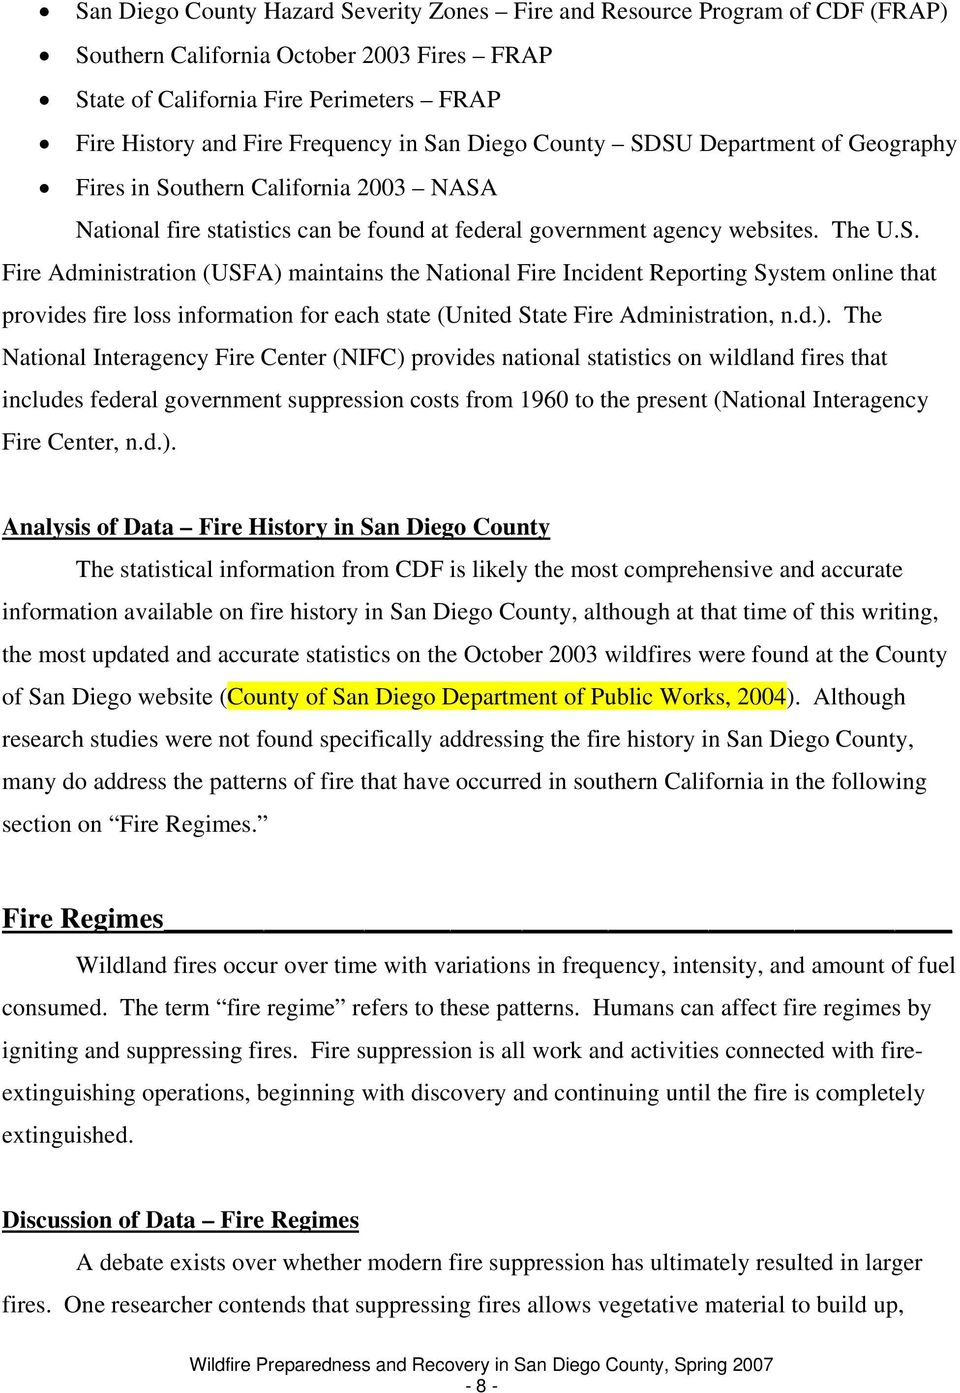 d.). The National Interagency Fire Center (NIFC) provides national statistics on wildland fires that includes federal government suppression costs from 1960 to the present (National Interagency Fire